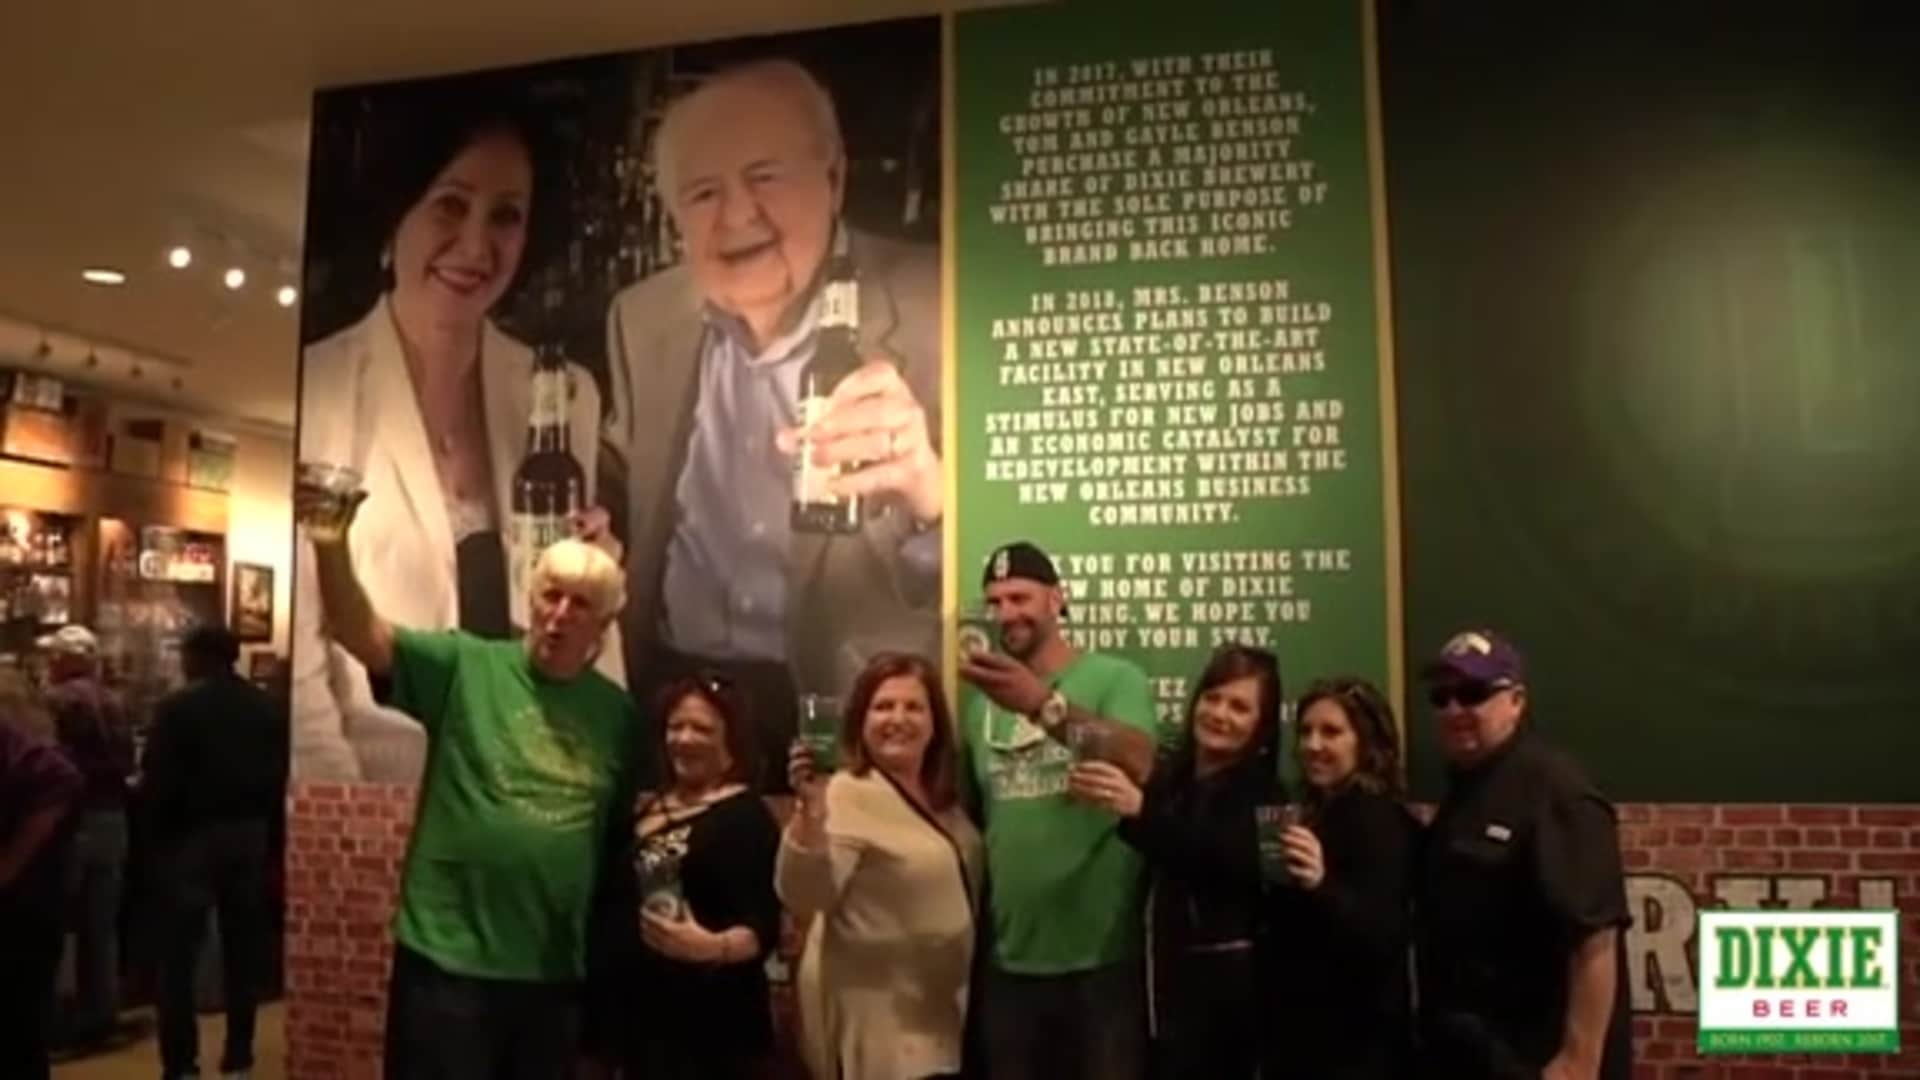 Pelicans owner Gayle Benson hosts Grand Opening of Dixie Beer Brewery